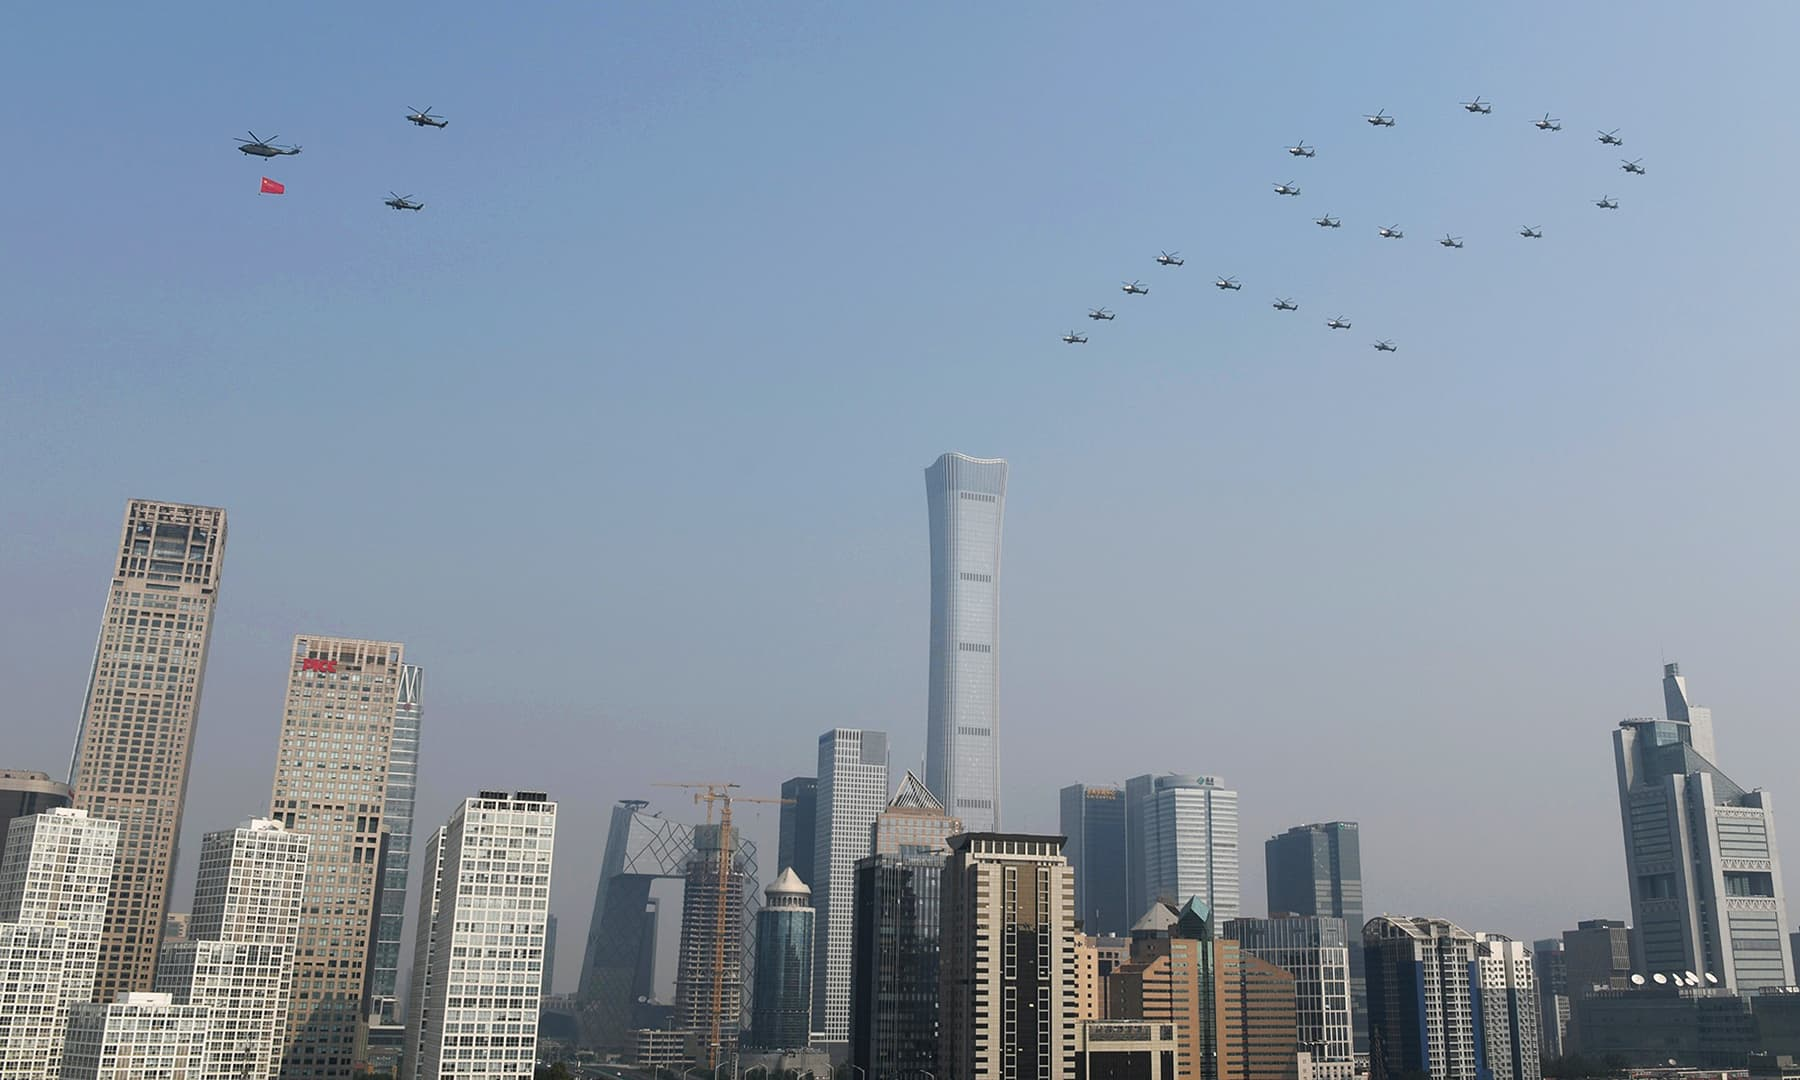 Military helicopters fly over the Central Business District in the formation of the number '70' during the military parade. — Reuters